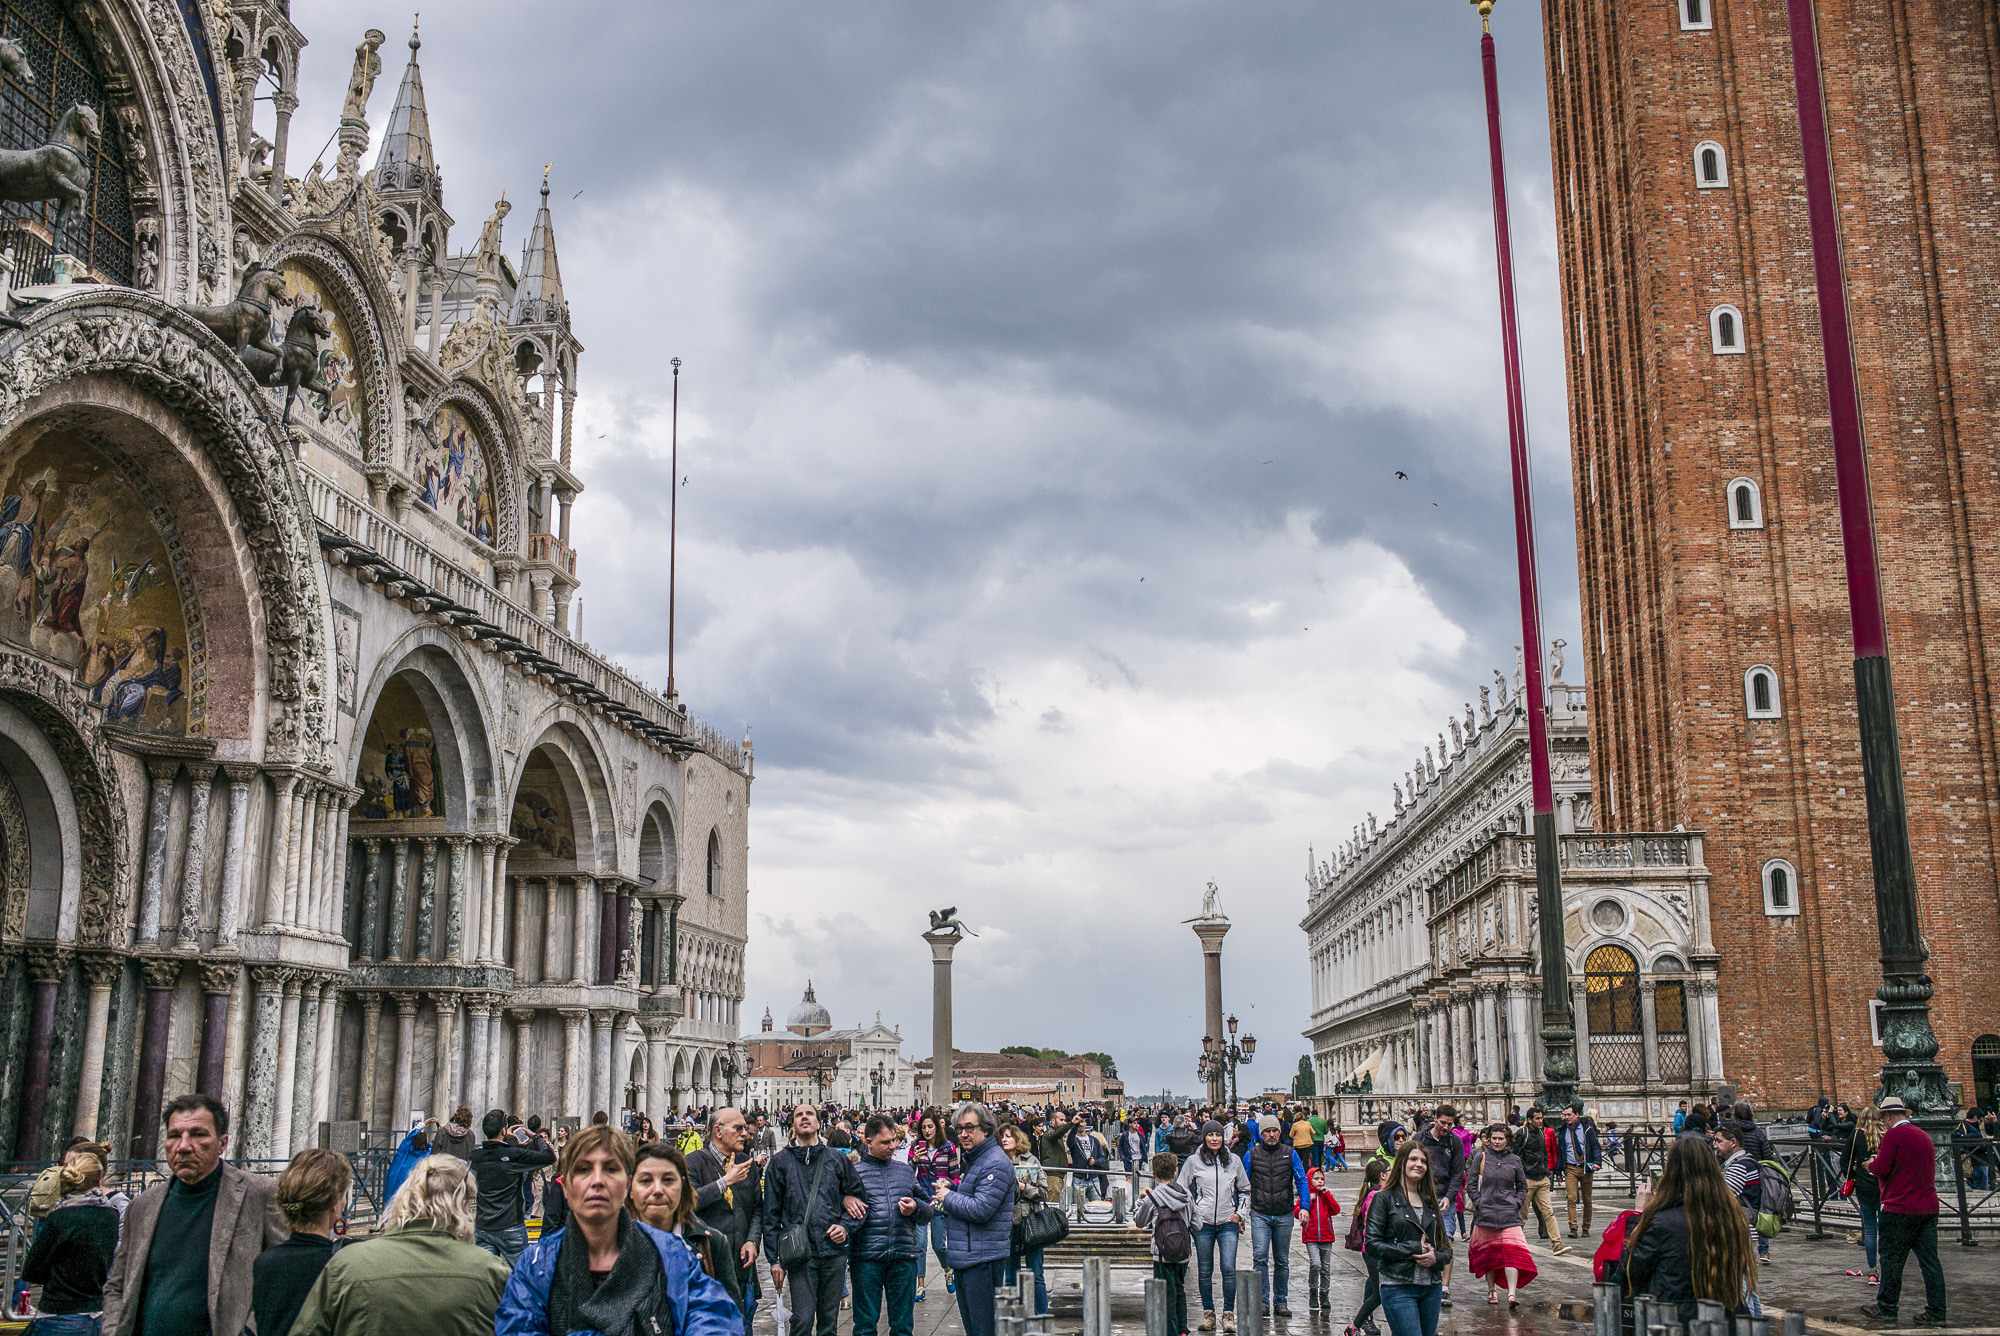 Crowds of San Marco